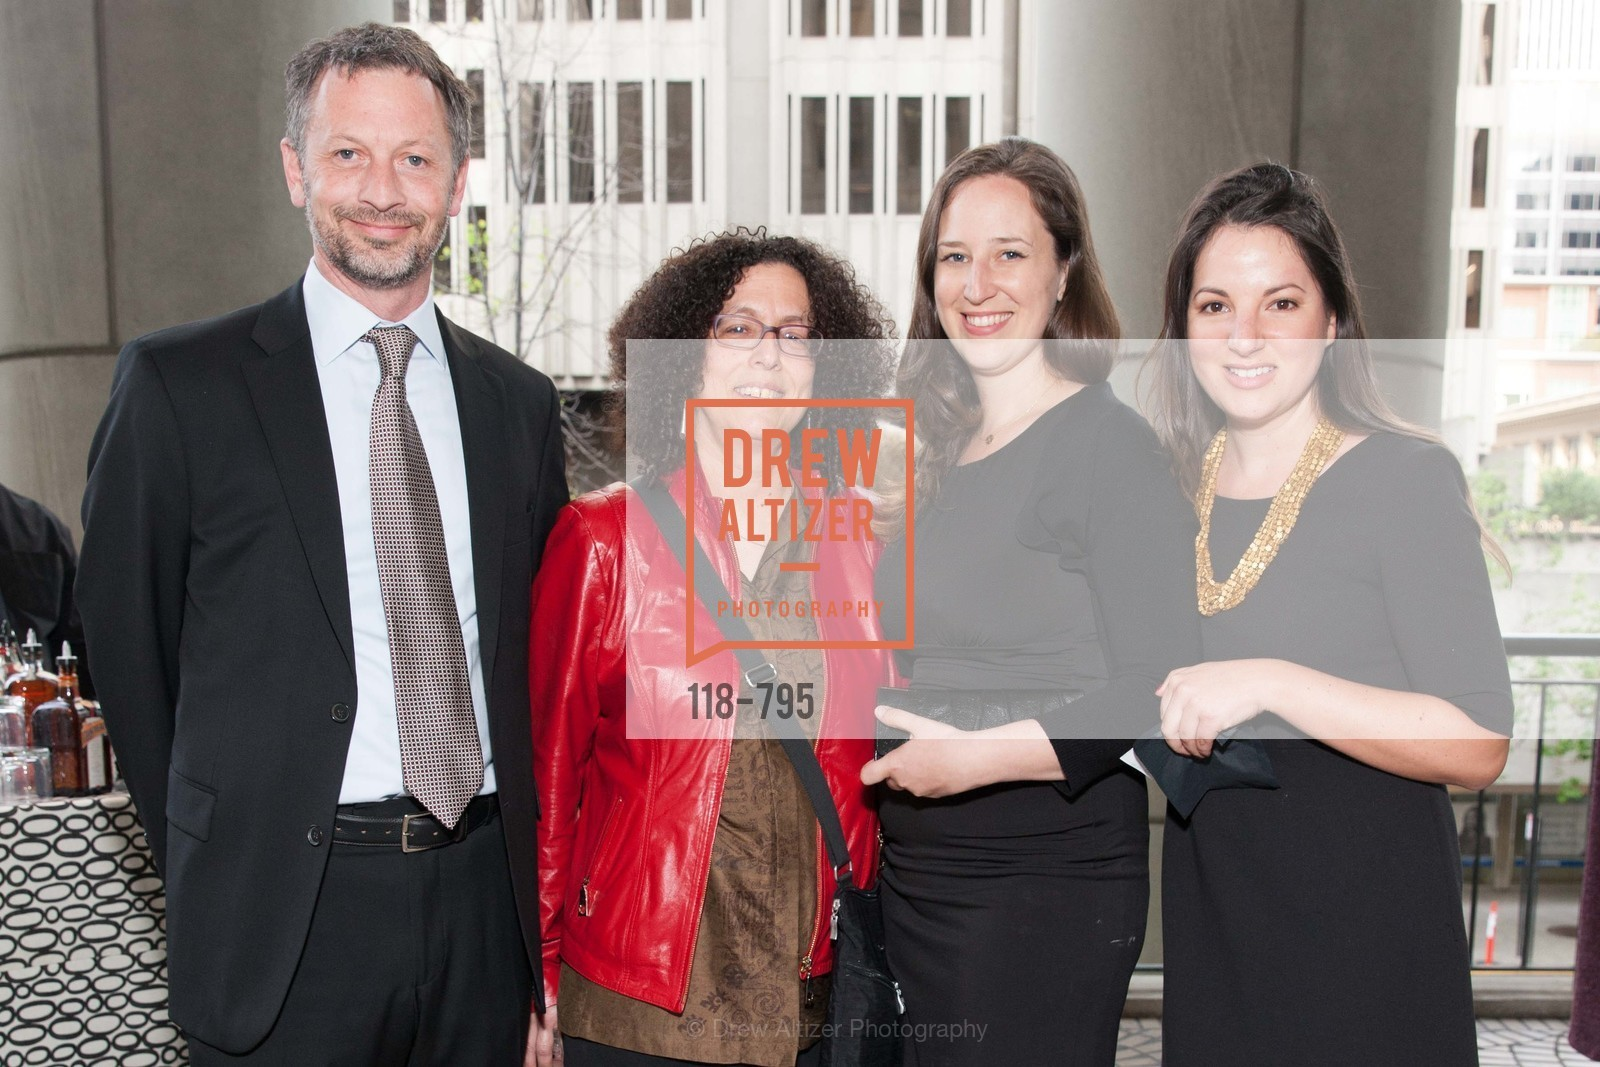 Jeff Cain, Susan Reider, Carla Praglin, Lindsey Schwartz, COMPASS FAMILY SERVICES Annual Spring Benefit:  Every Family Needs A Home, US, April 22nd, 2015,Drew Altizer, Drew Altizer Photography, full-service agency, private events, San Francisco photographer, photographer california